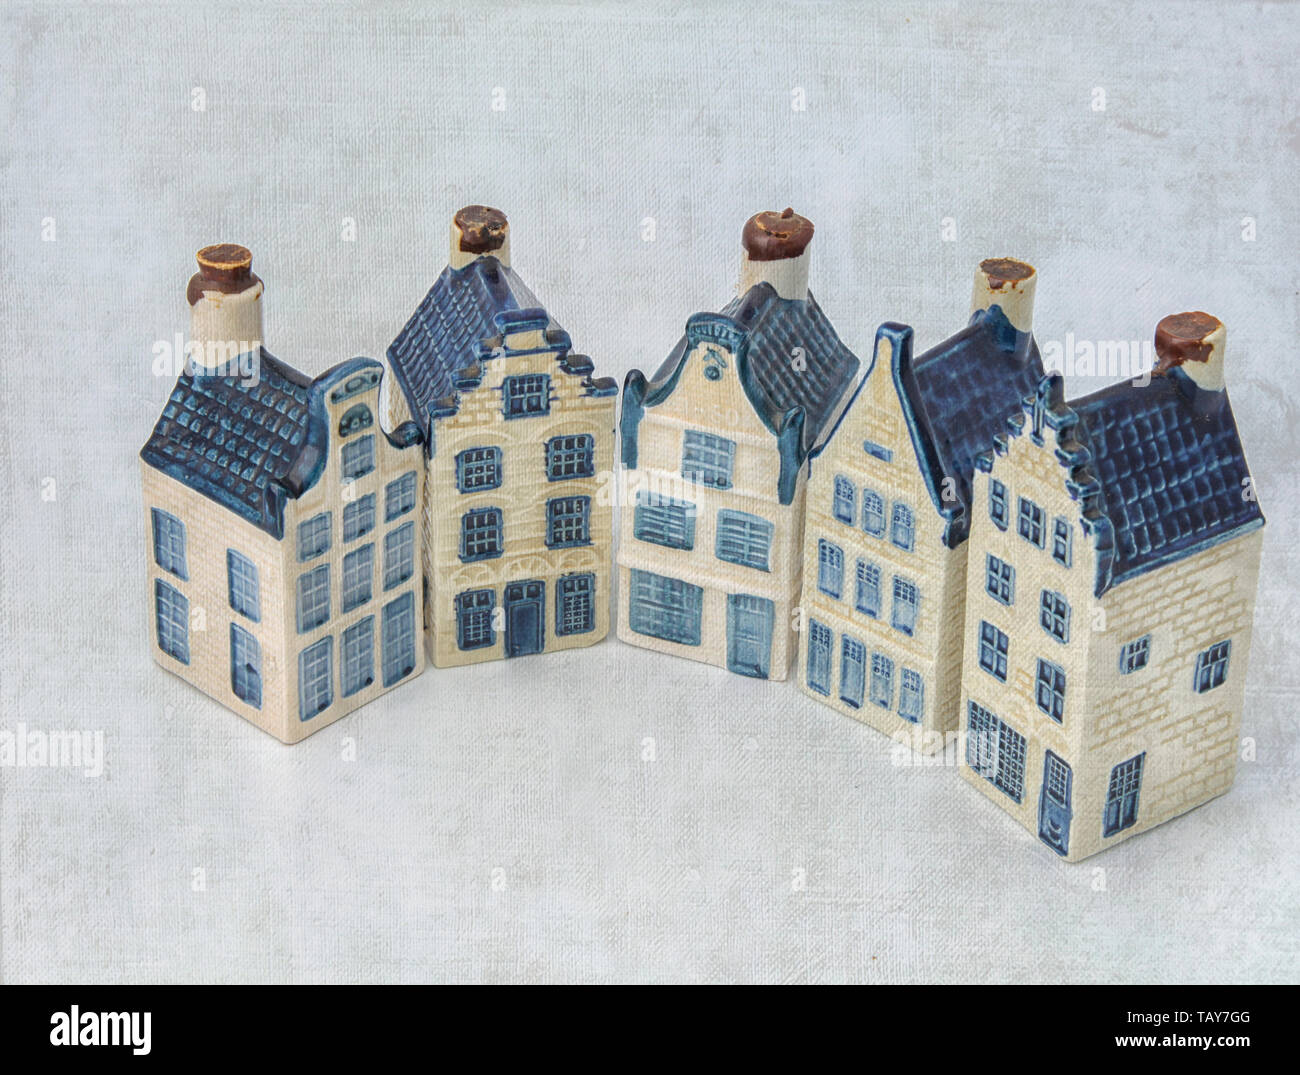 Dutch historical ceramic houses in Delft china in half a circle - Stock Image